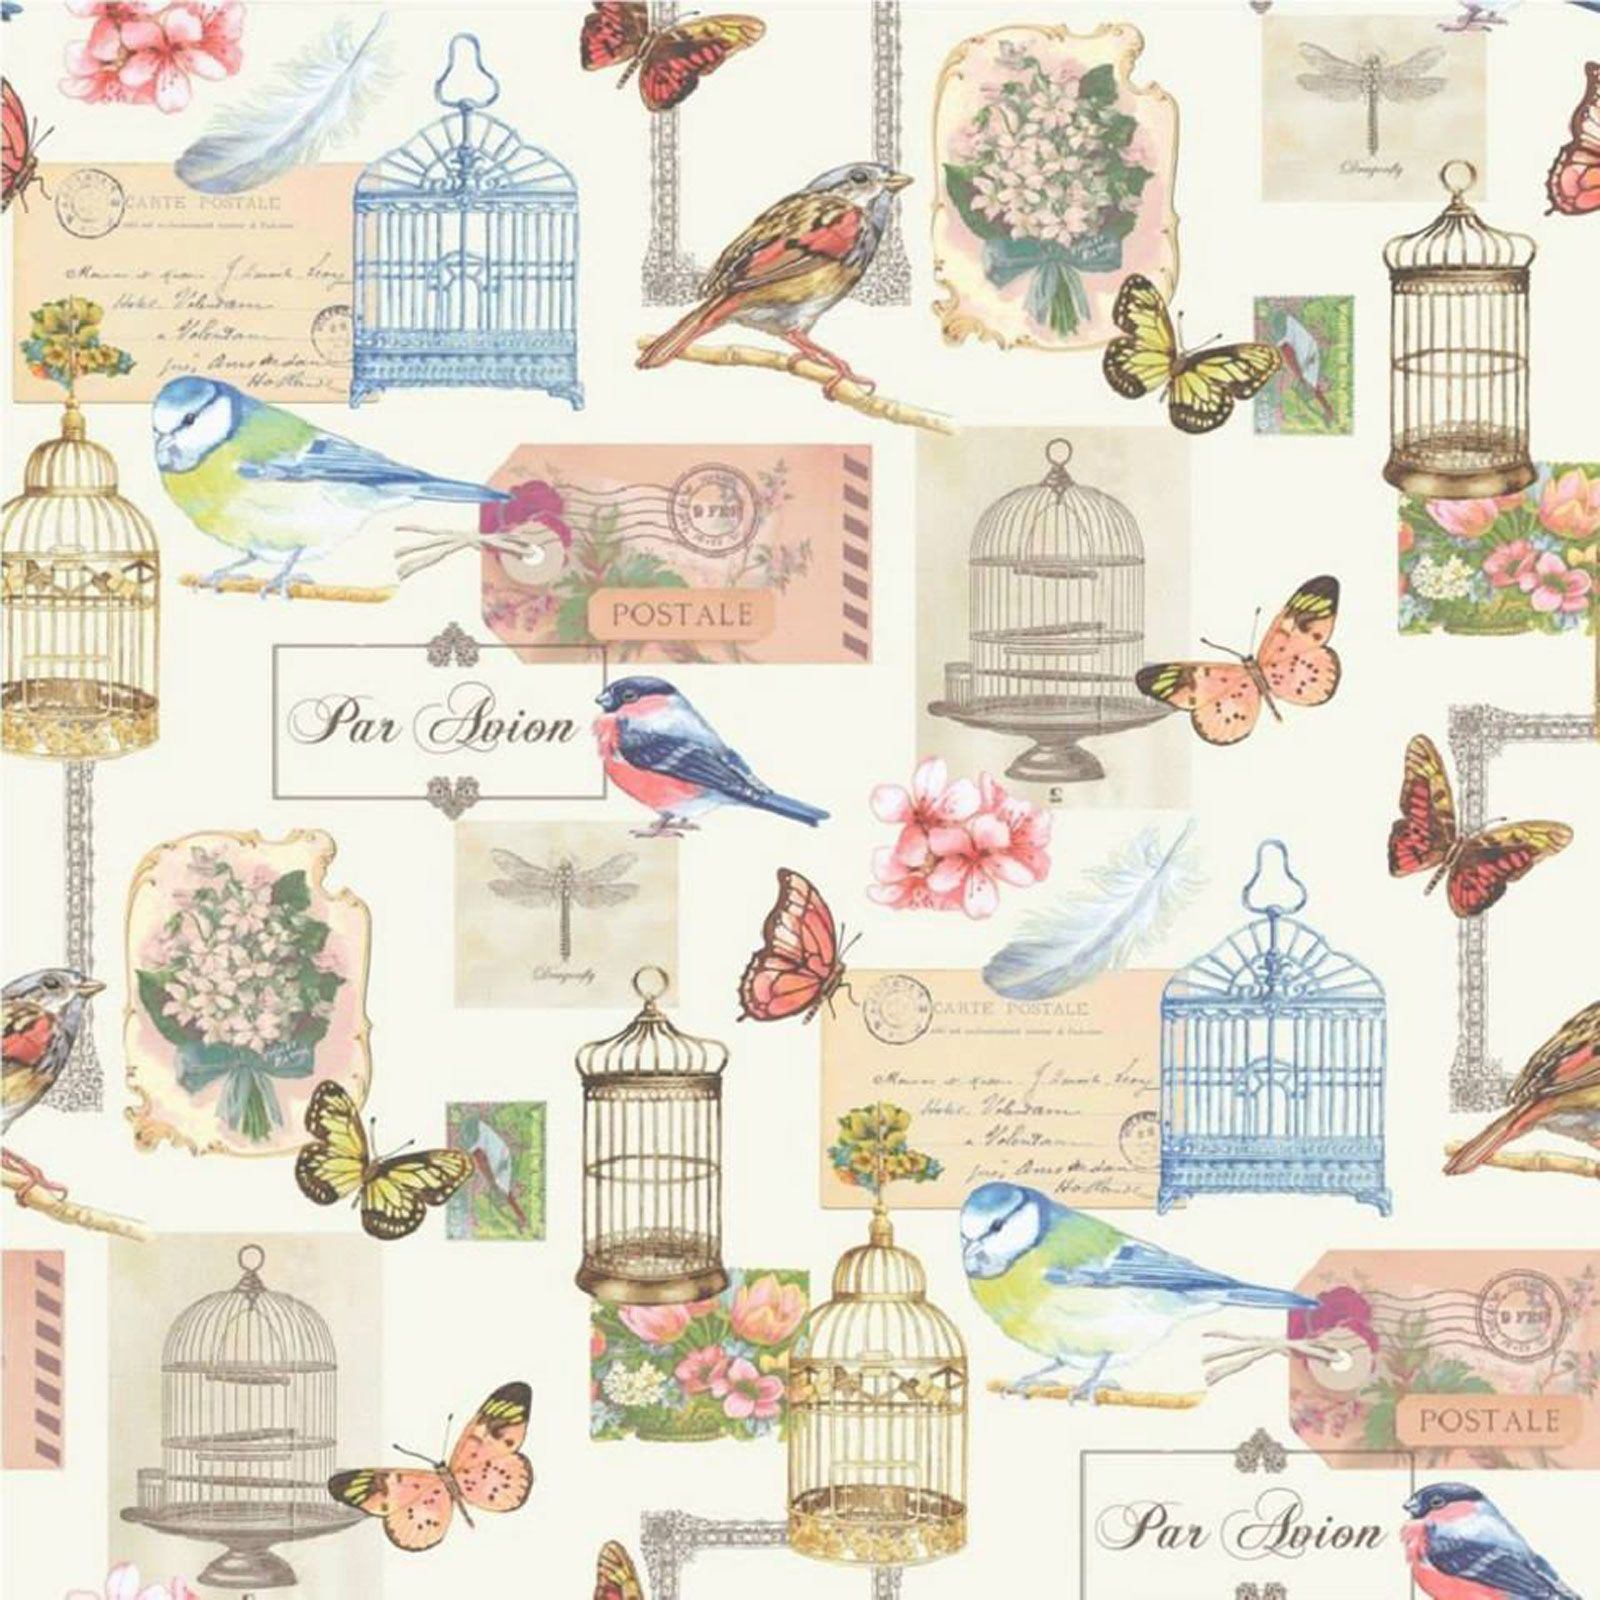 Shabby chic floral wallpaper in various designs wall decor new free p p ebay - Papier peint shabby chic ...